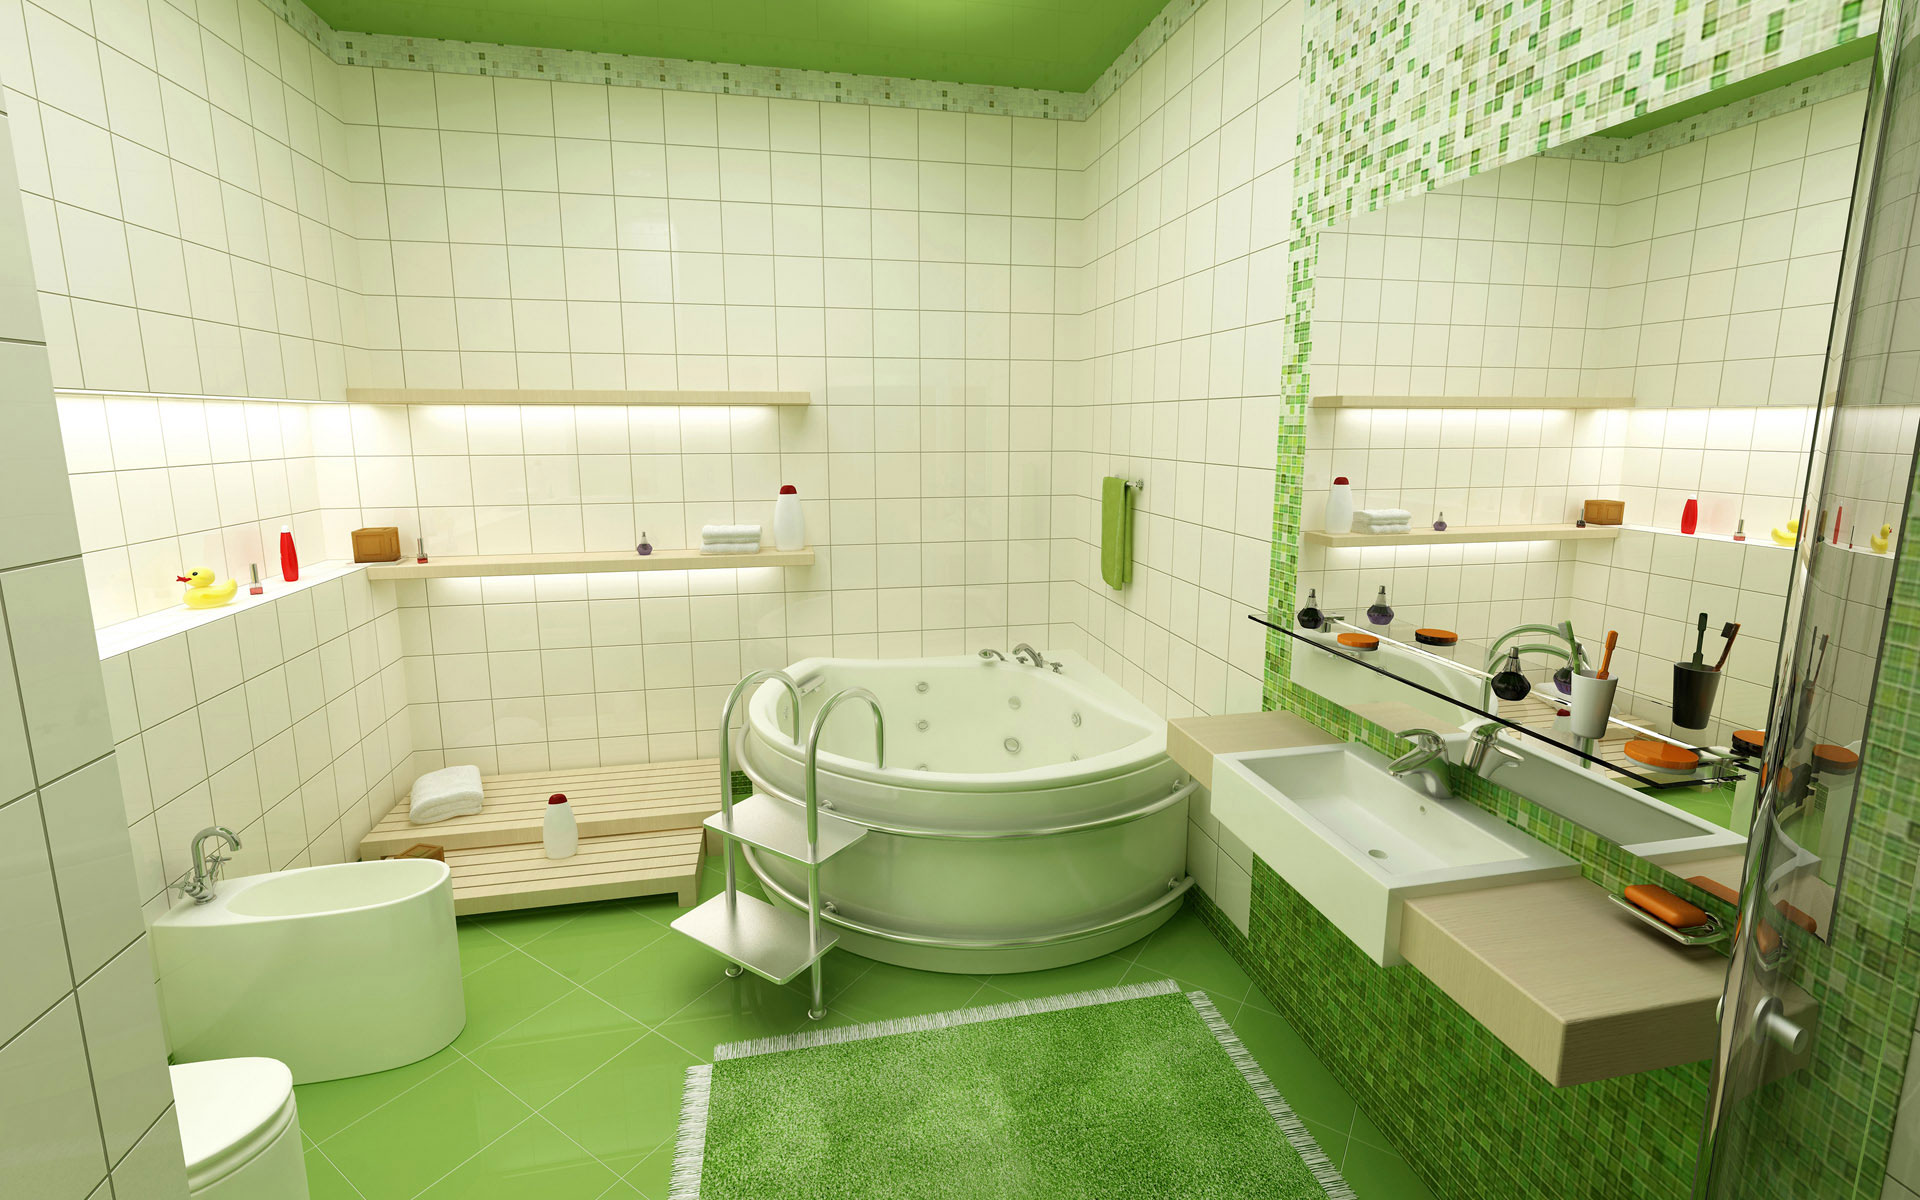 Cool Green Bathroom Tiles On Pinterest  Tile Ideas Blue Green Bathrooms